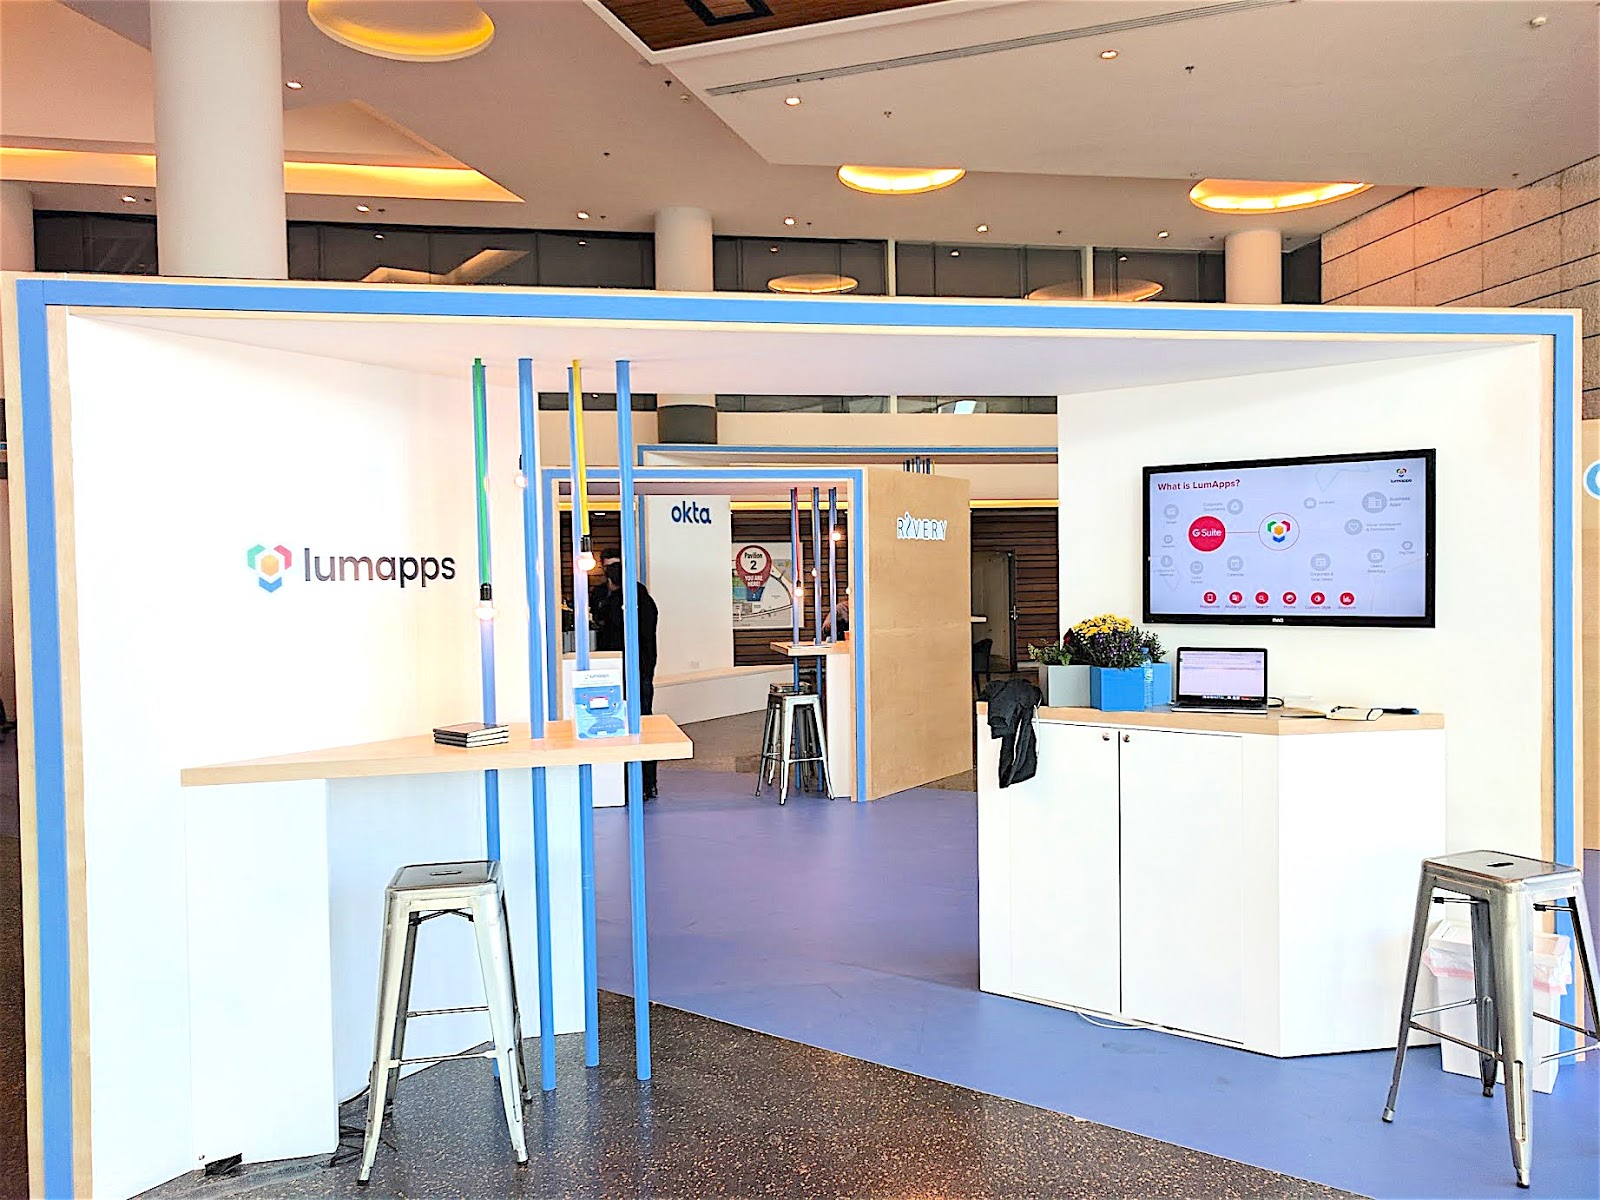 LumApps booth at Google Next Tel Aviv